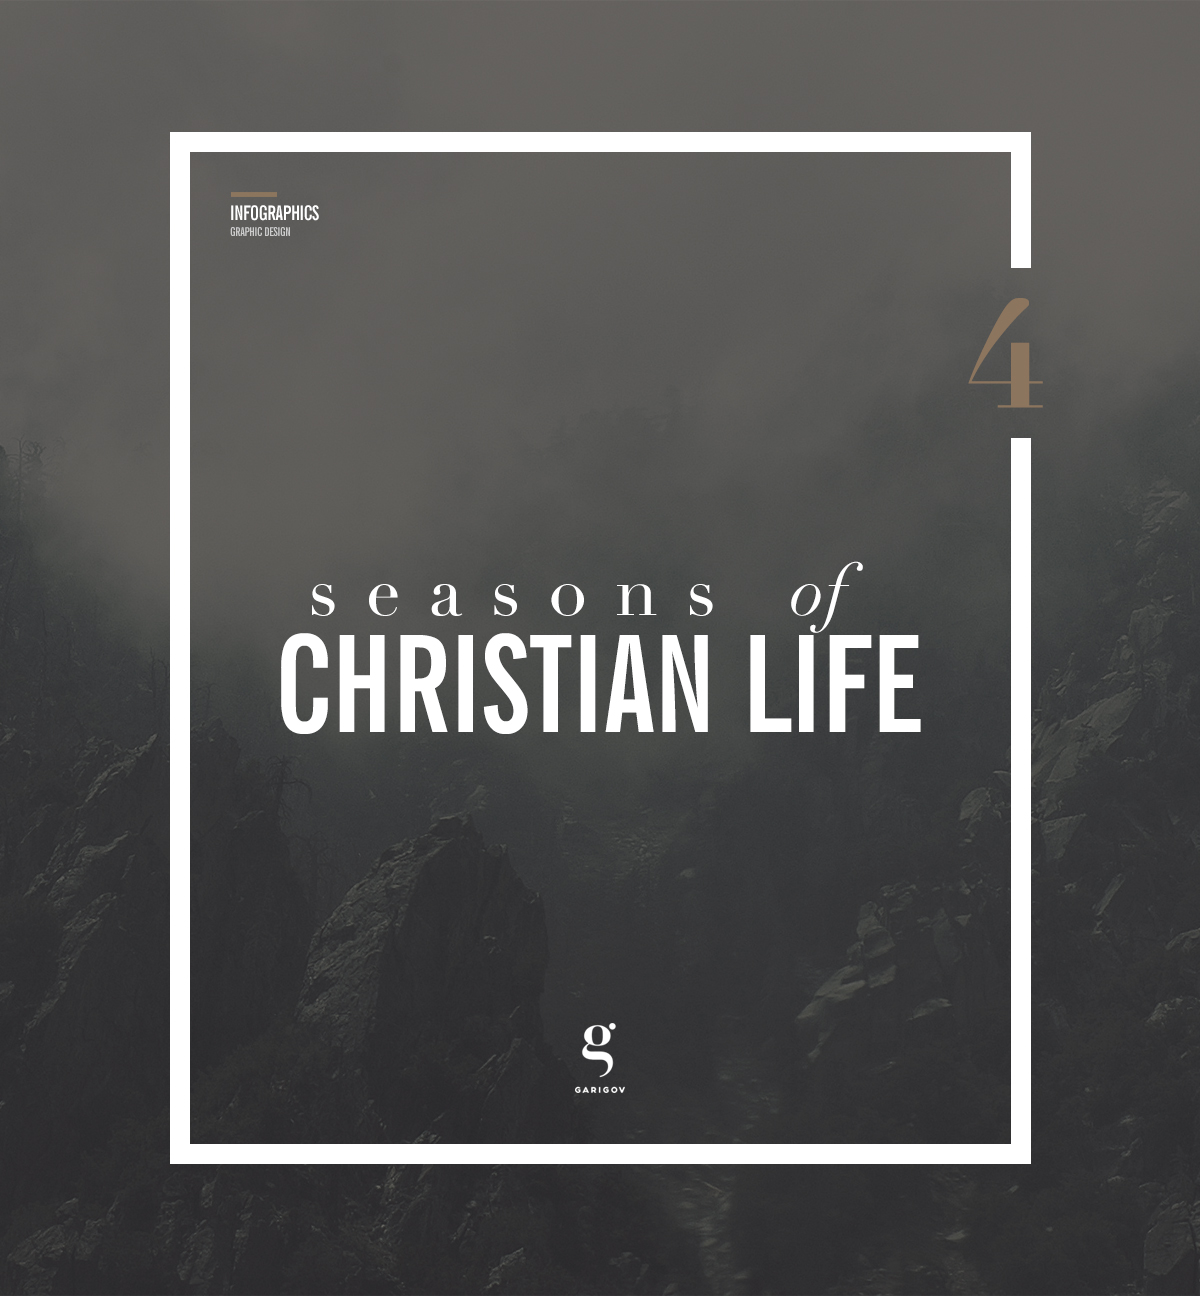 infographics - seasons of christian life - intro